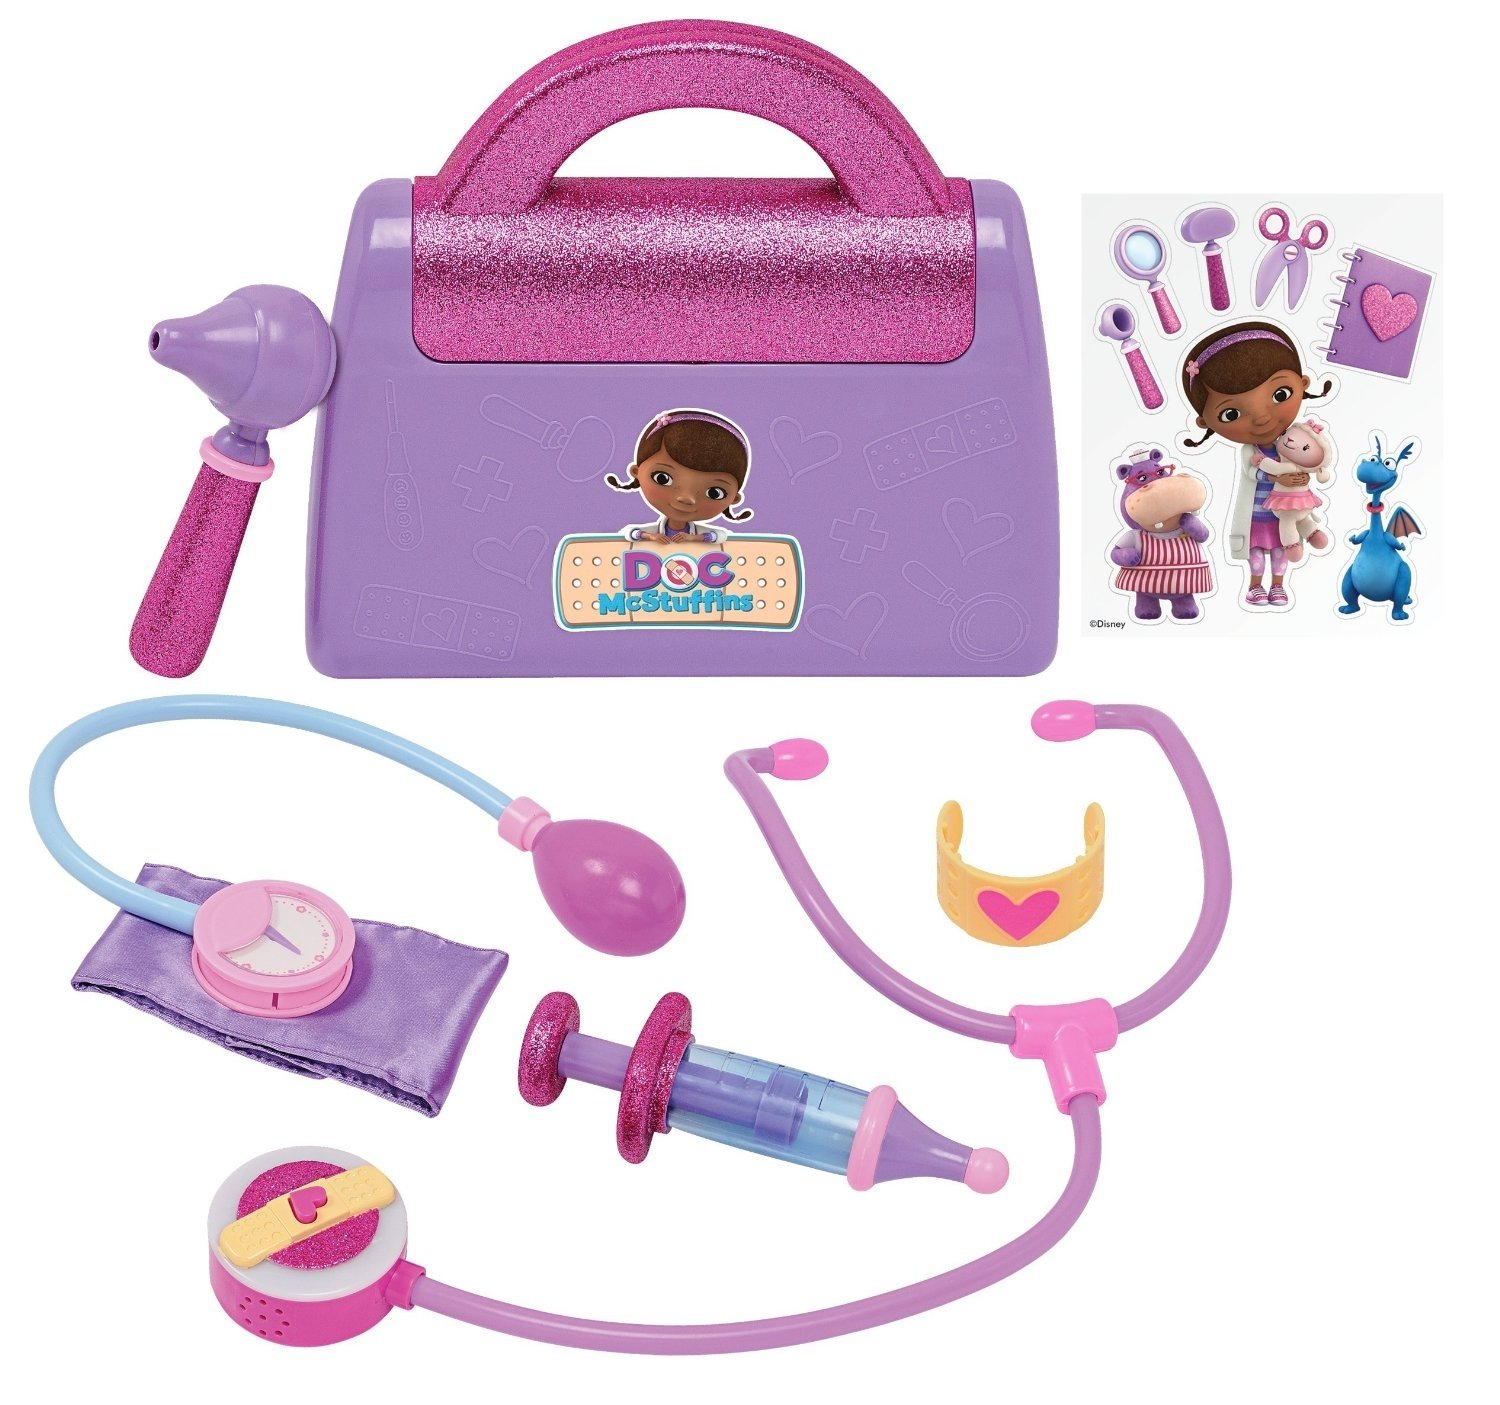 10 Spectacular Gift Ideas For 3 Yr Old Girl best gift ideas for three year old girls a gift guide 1 2020